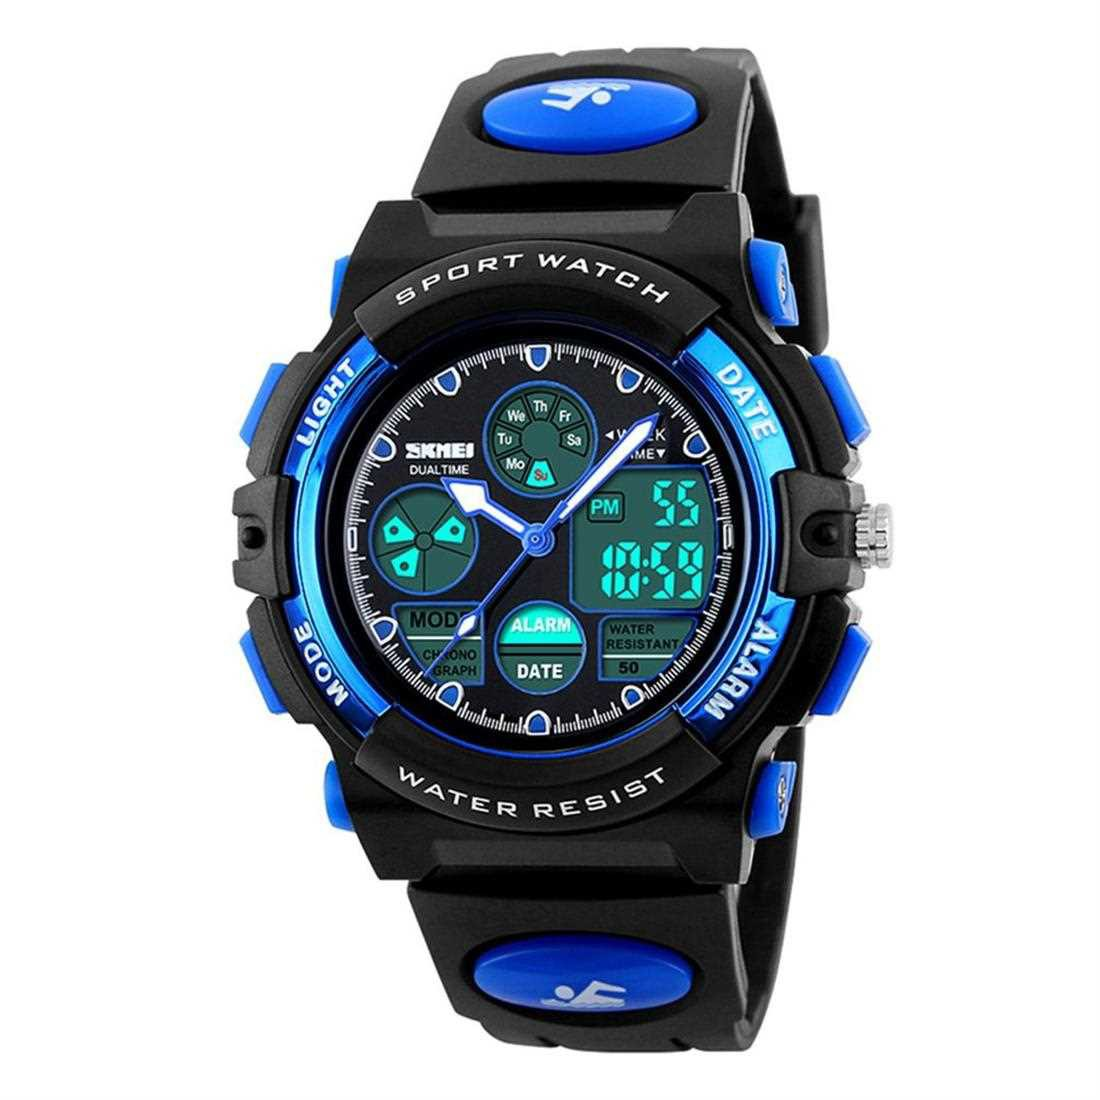 SKMEI Fashion Children Smart Watch LED Display Digital Wristwatch Waterproof (Blue)